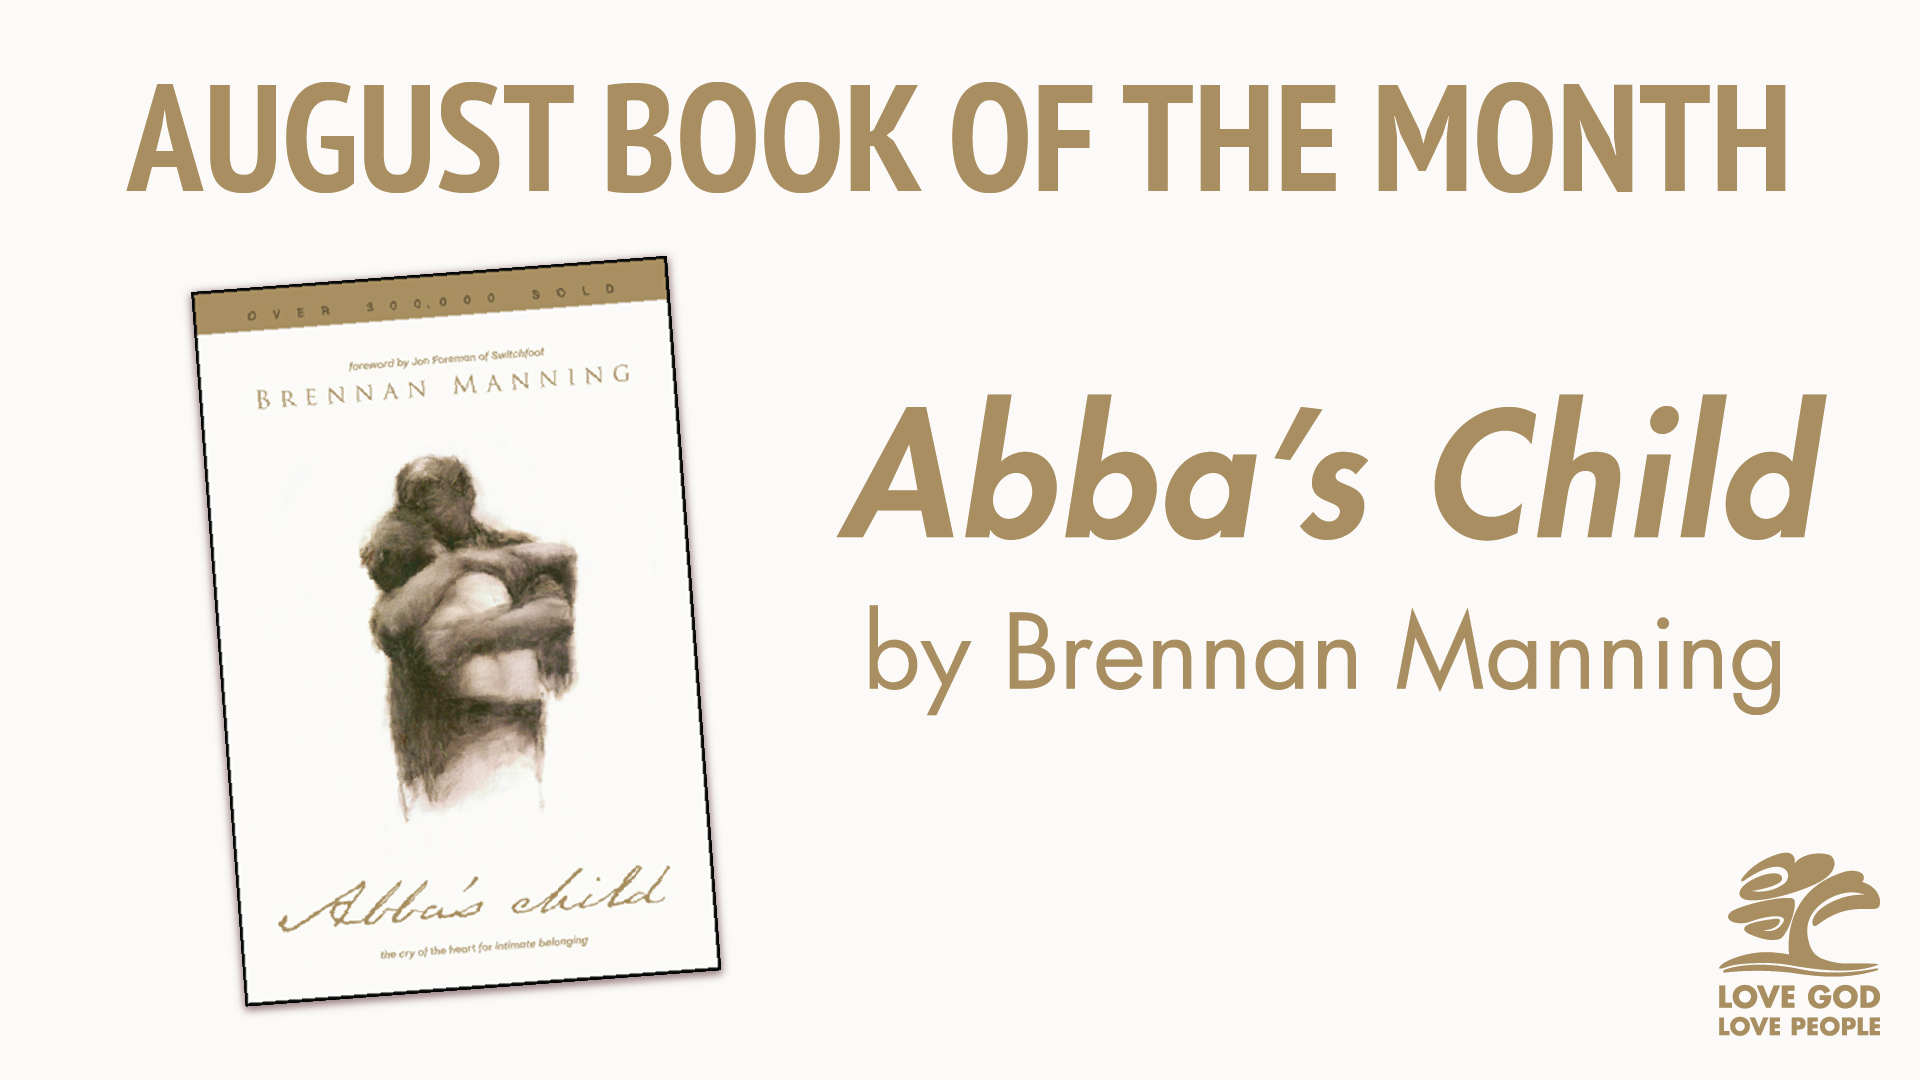 BookoftheMonth-August2019.png